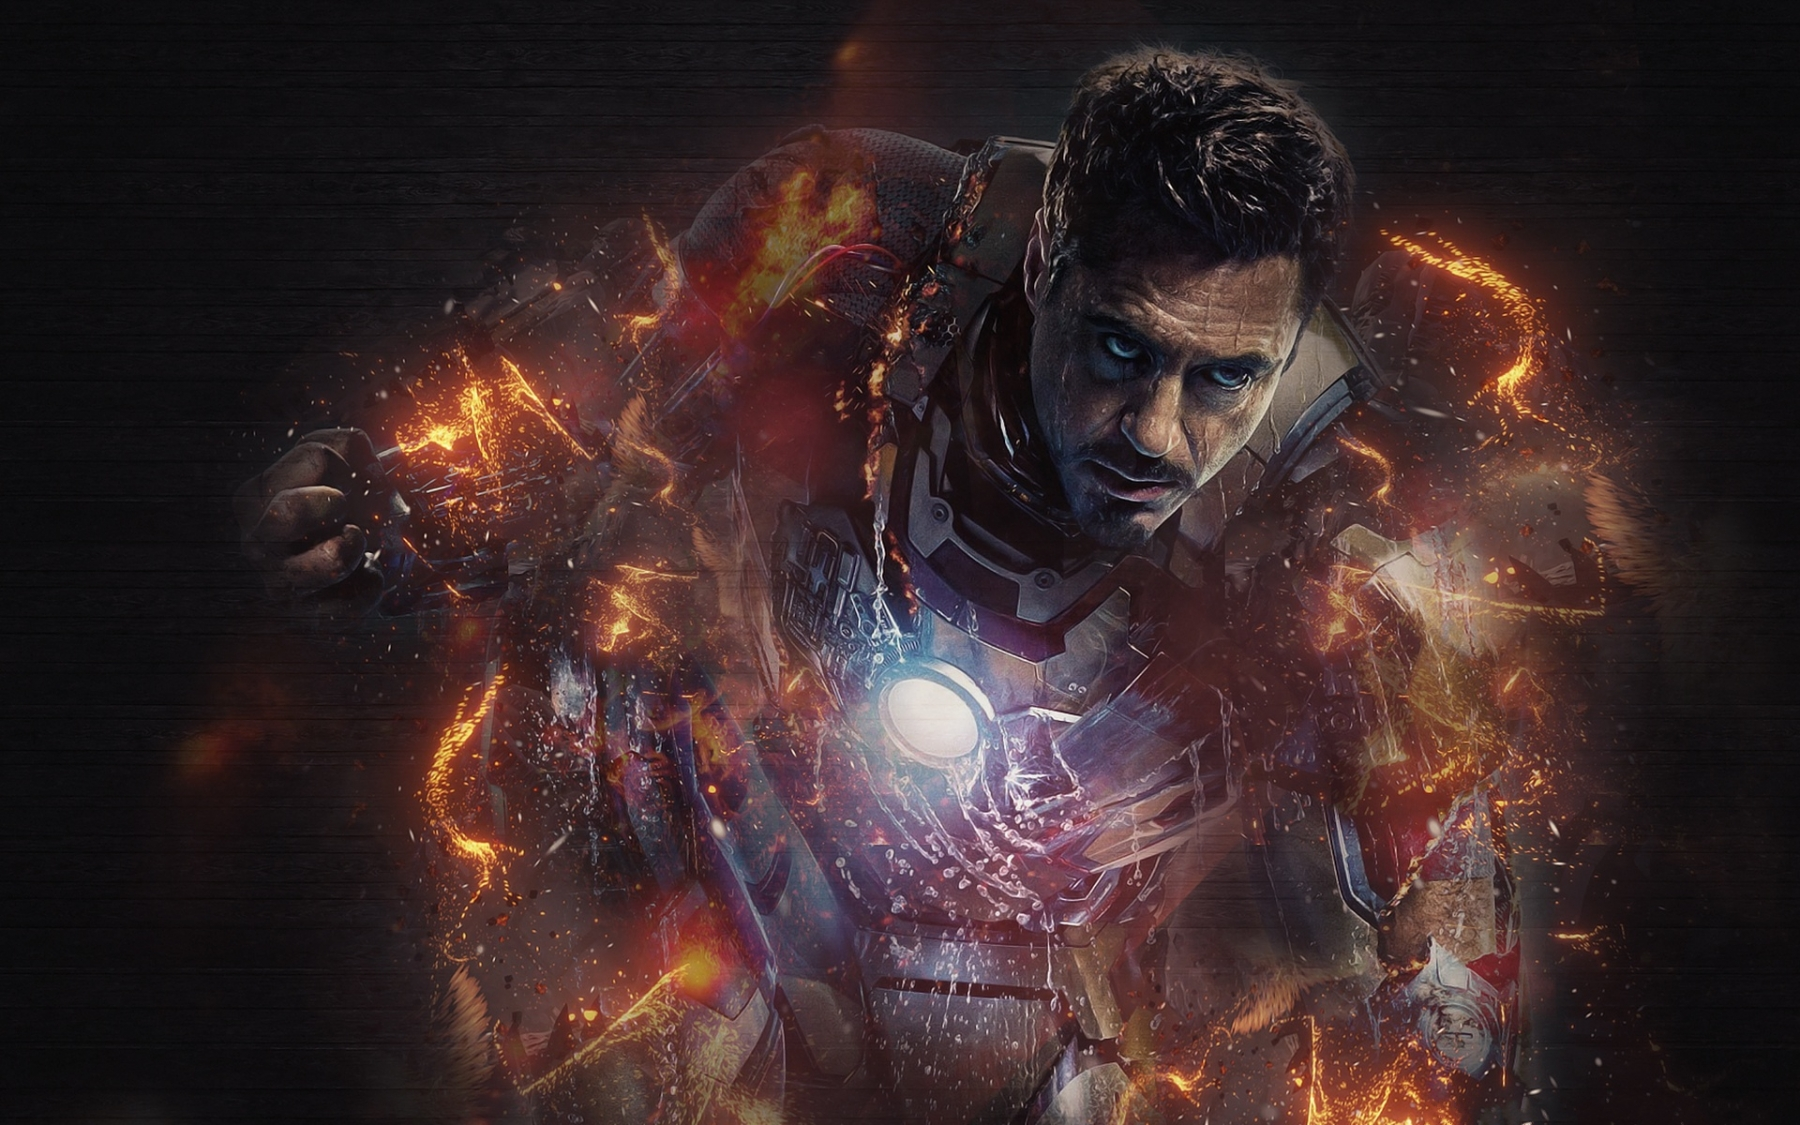 Iron Man Hd Wallpaper Background Image 1920x1080 Yl